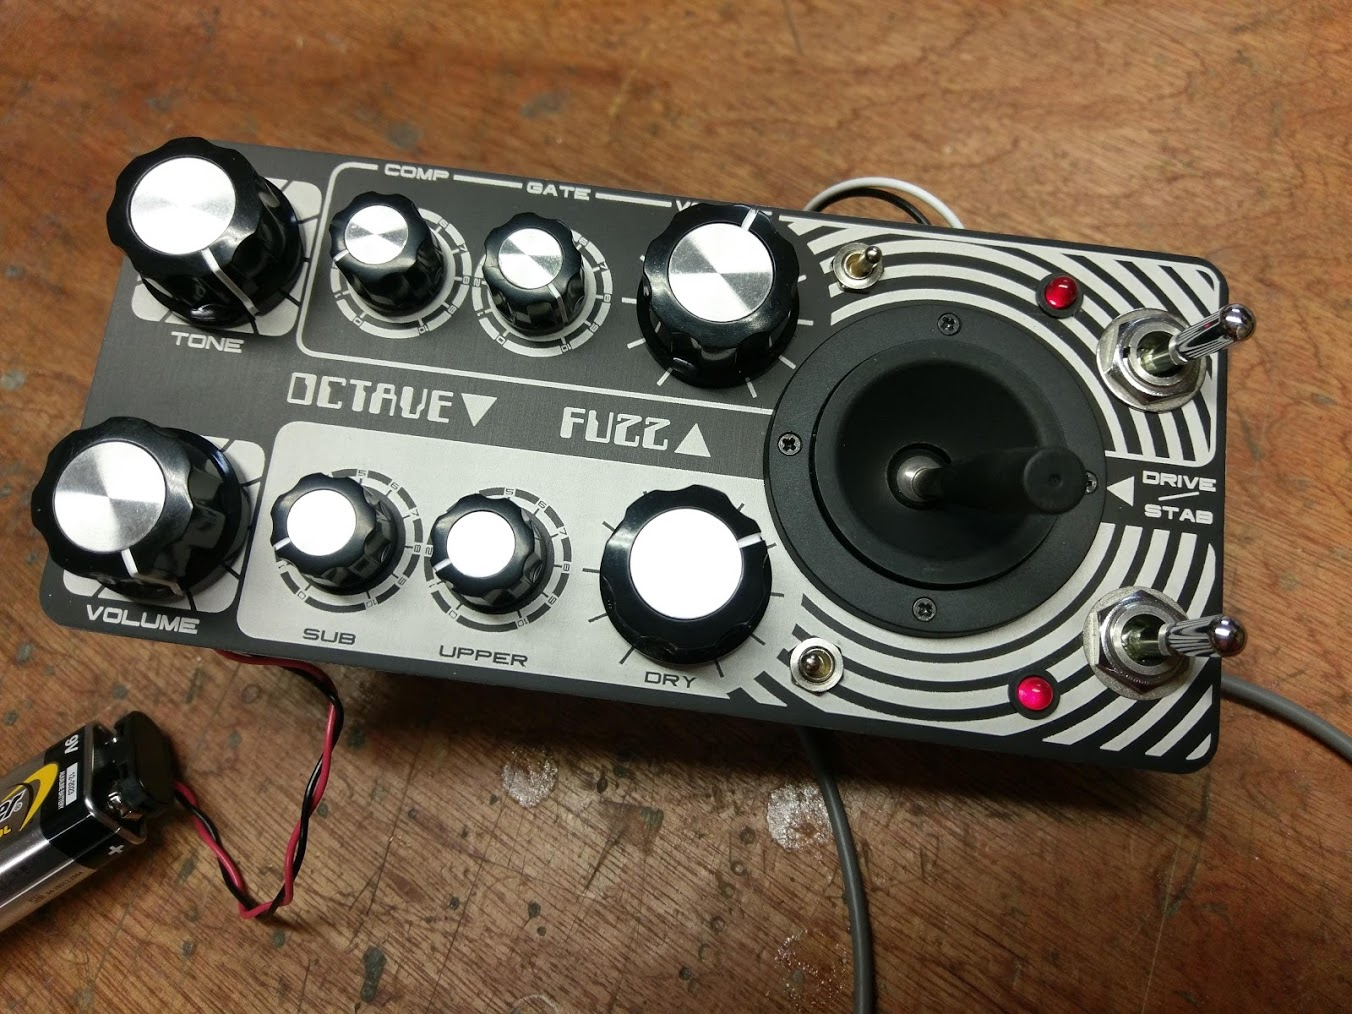 Custom-made effects pedal